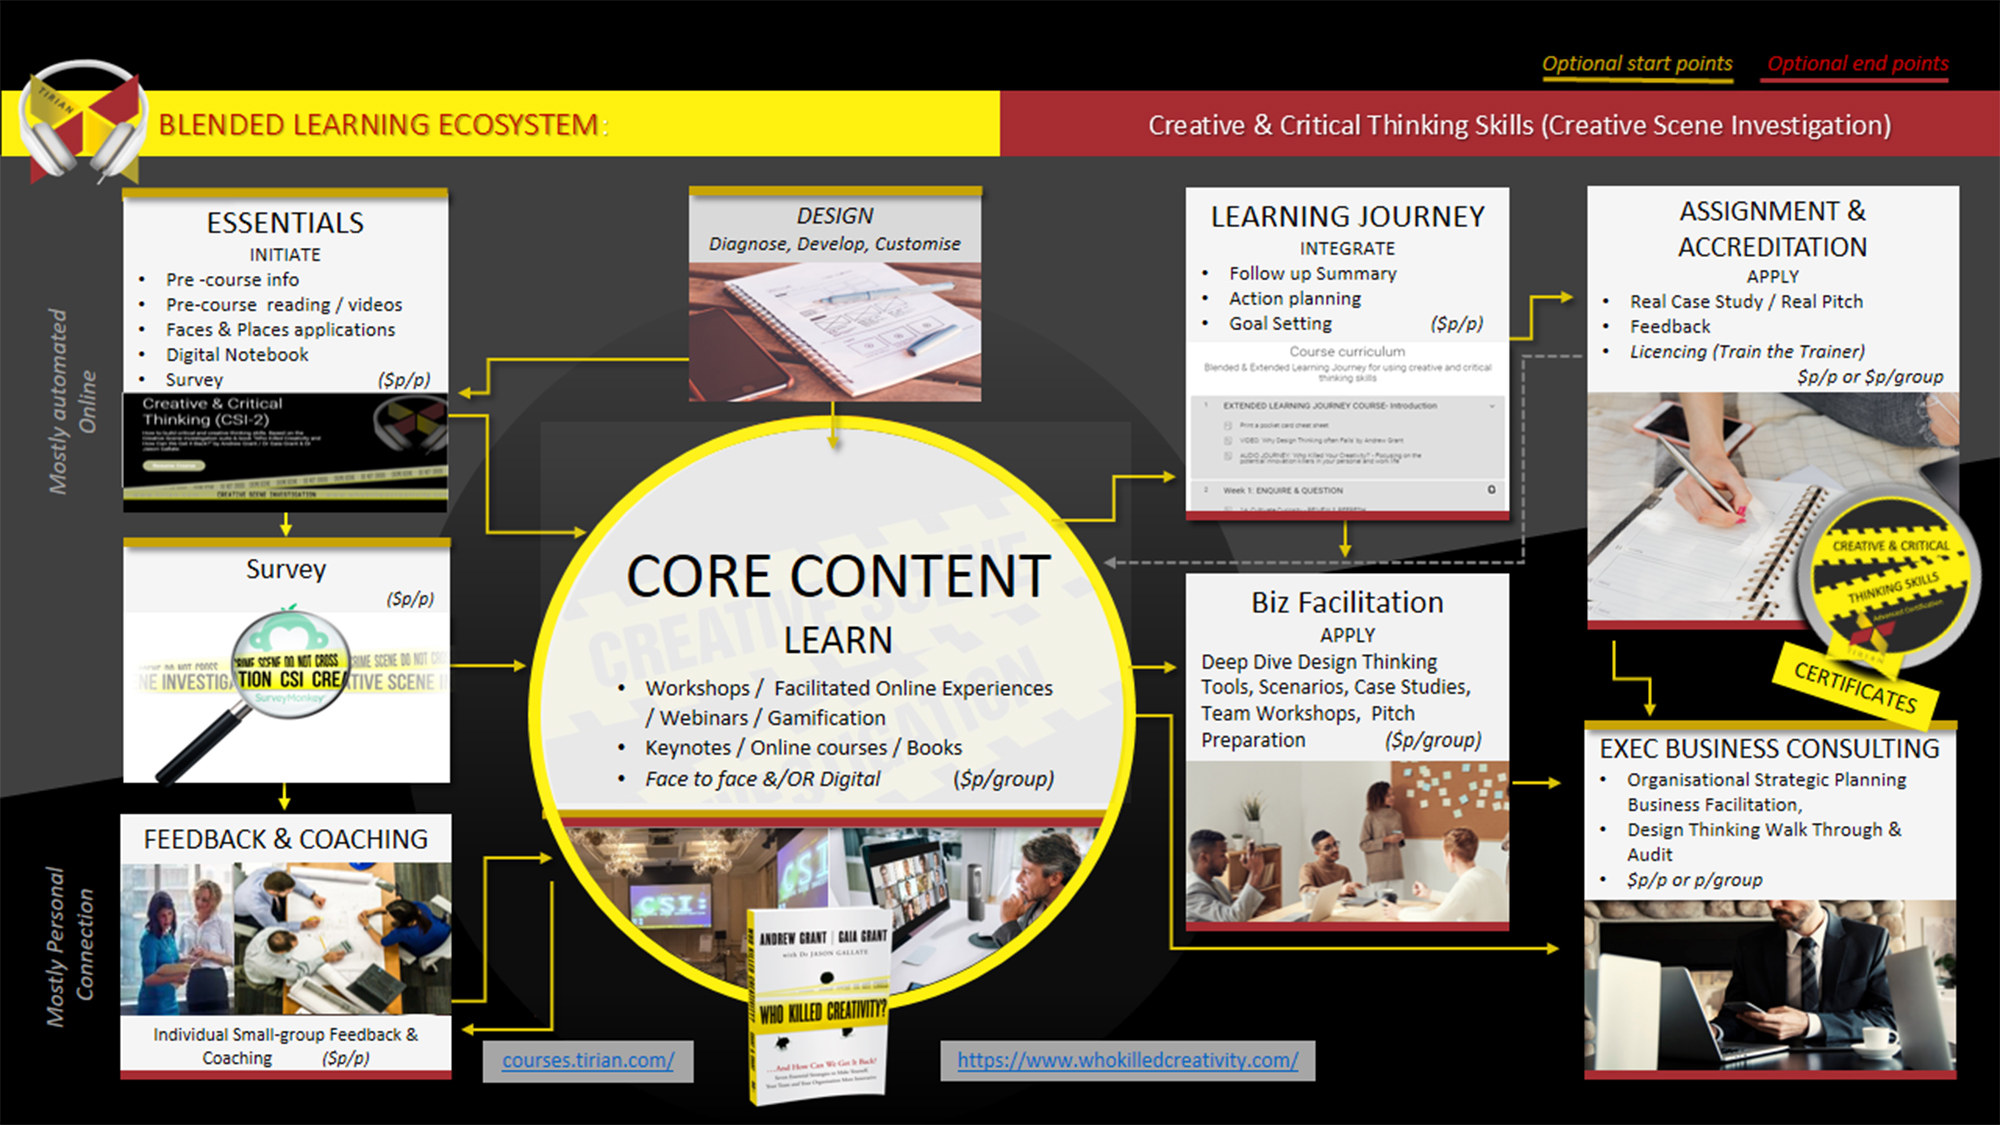 Core Content Learn blended learning ecosystem